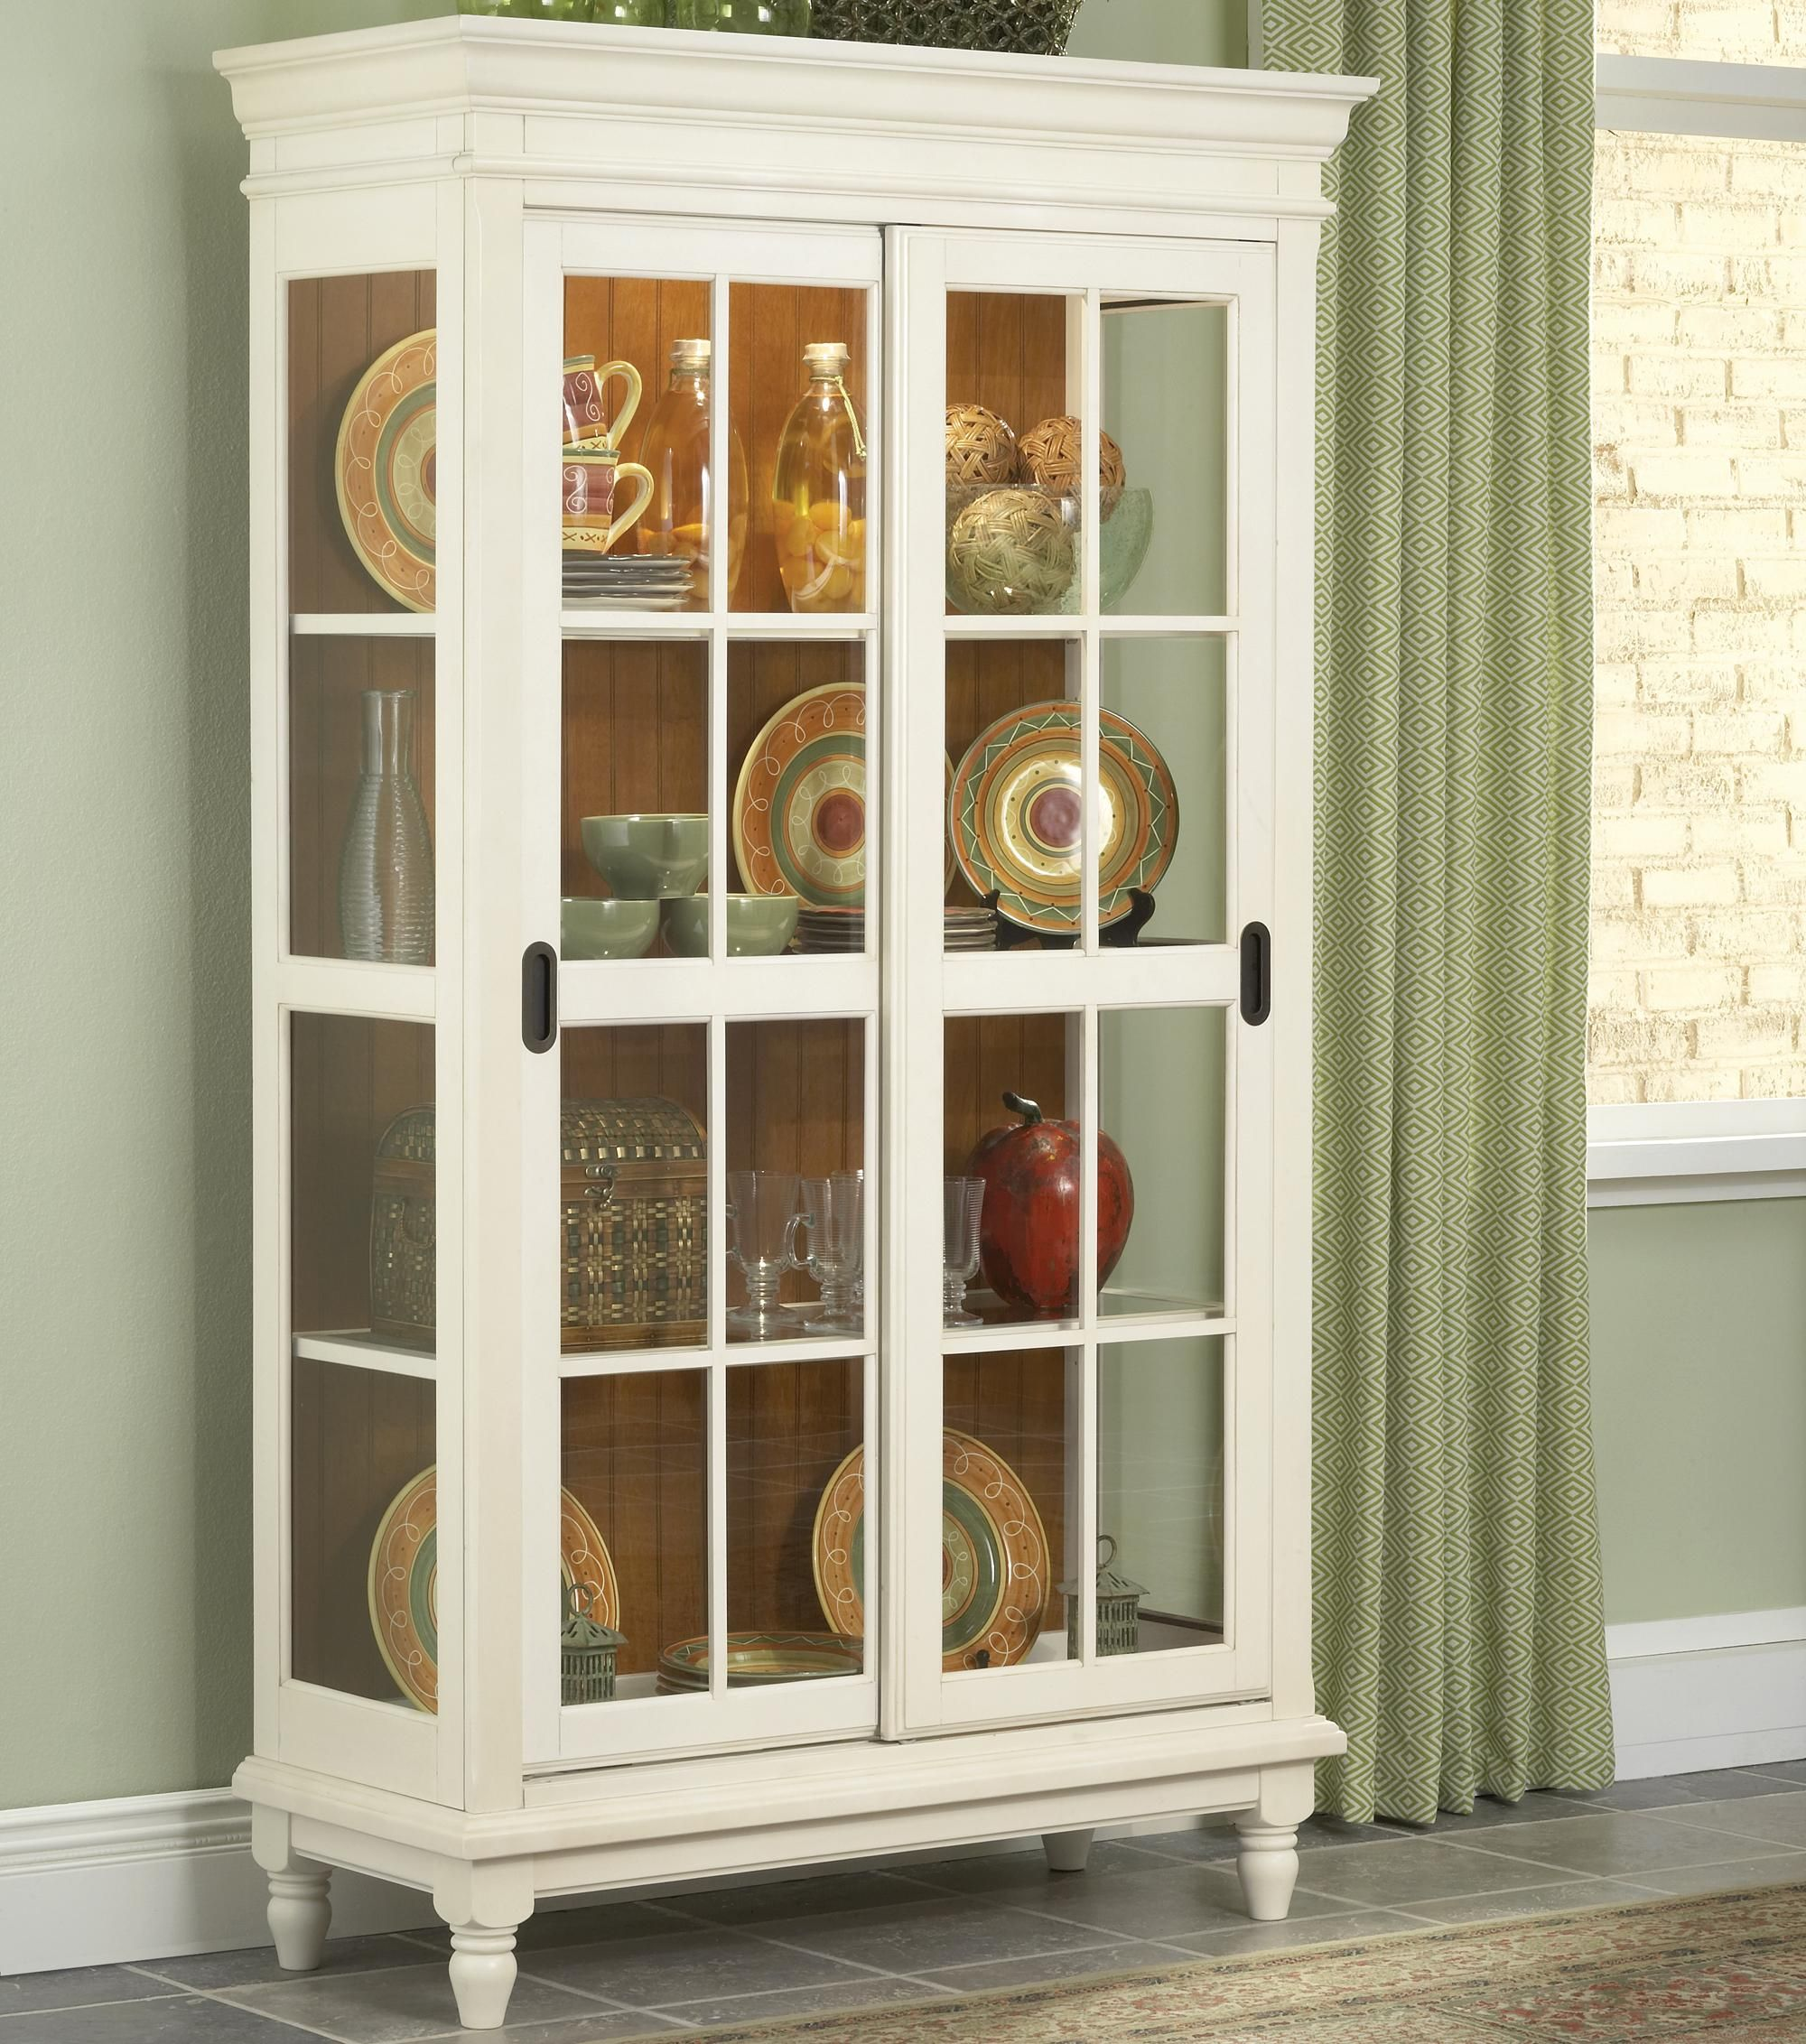 Superieur Dining Room Pieces Curio Cabinet With Crown Moulding, Turned Feet, And  Sliding Glass Doors